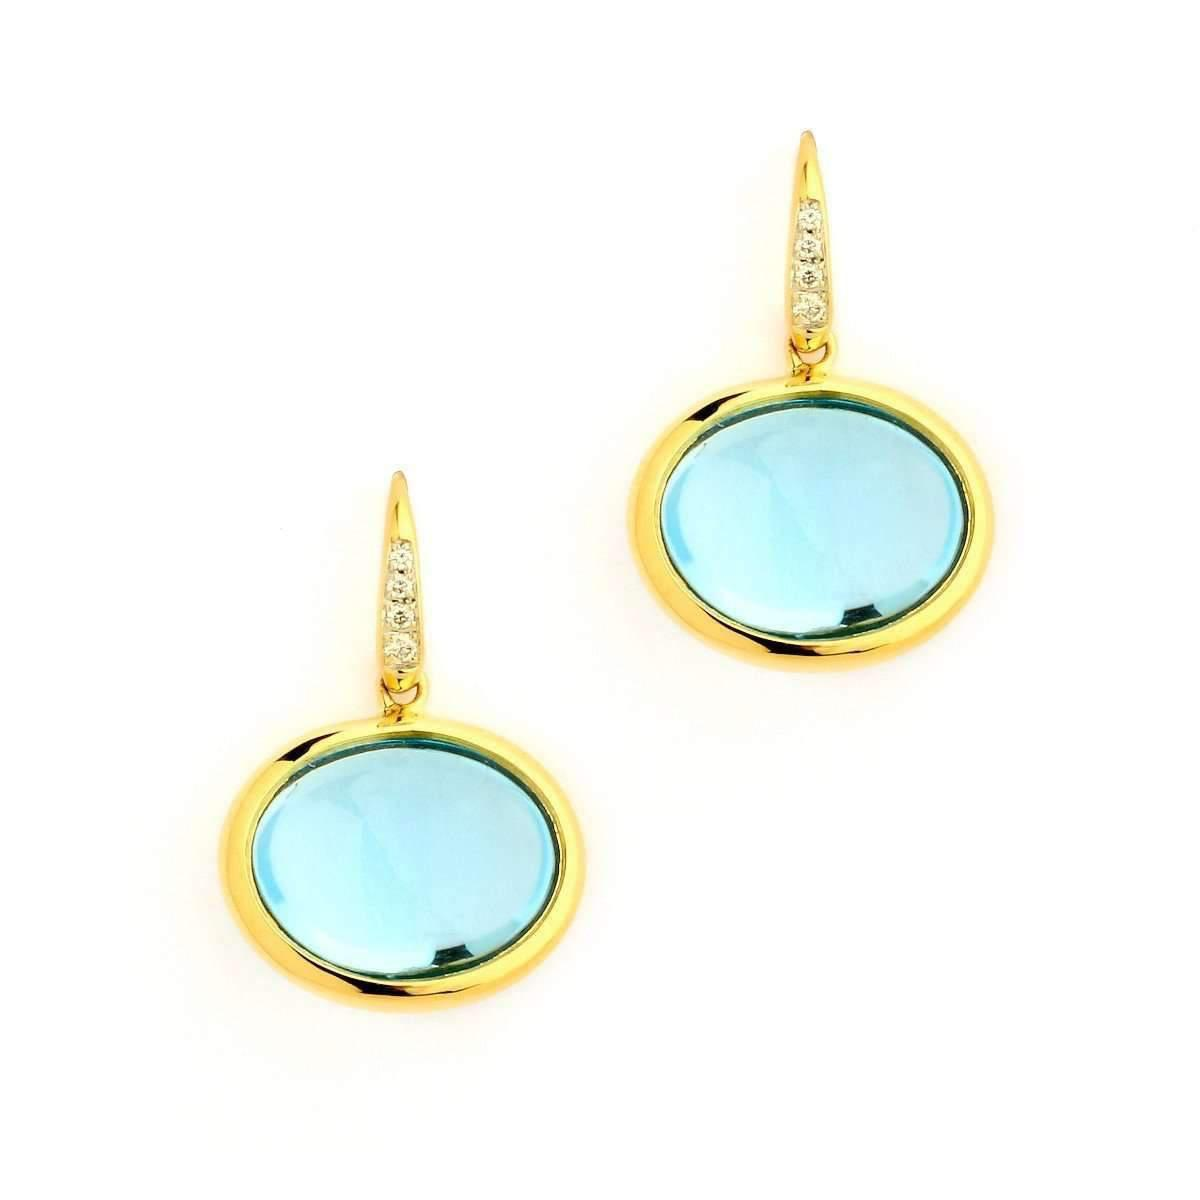 Syna 18kt Blue Topaz Earrings With Diamonds